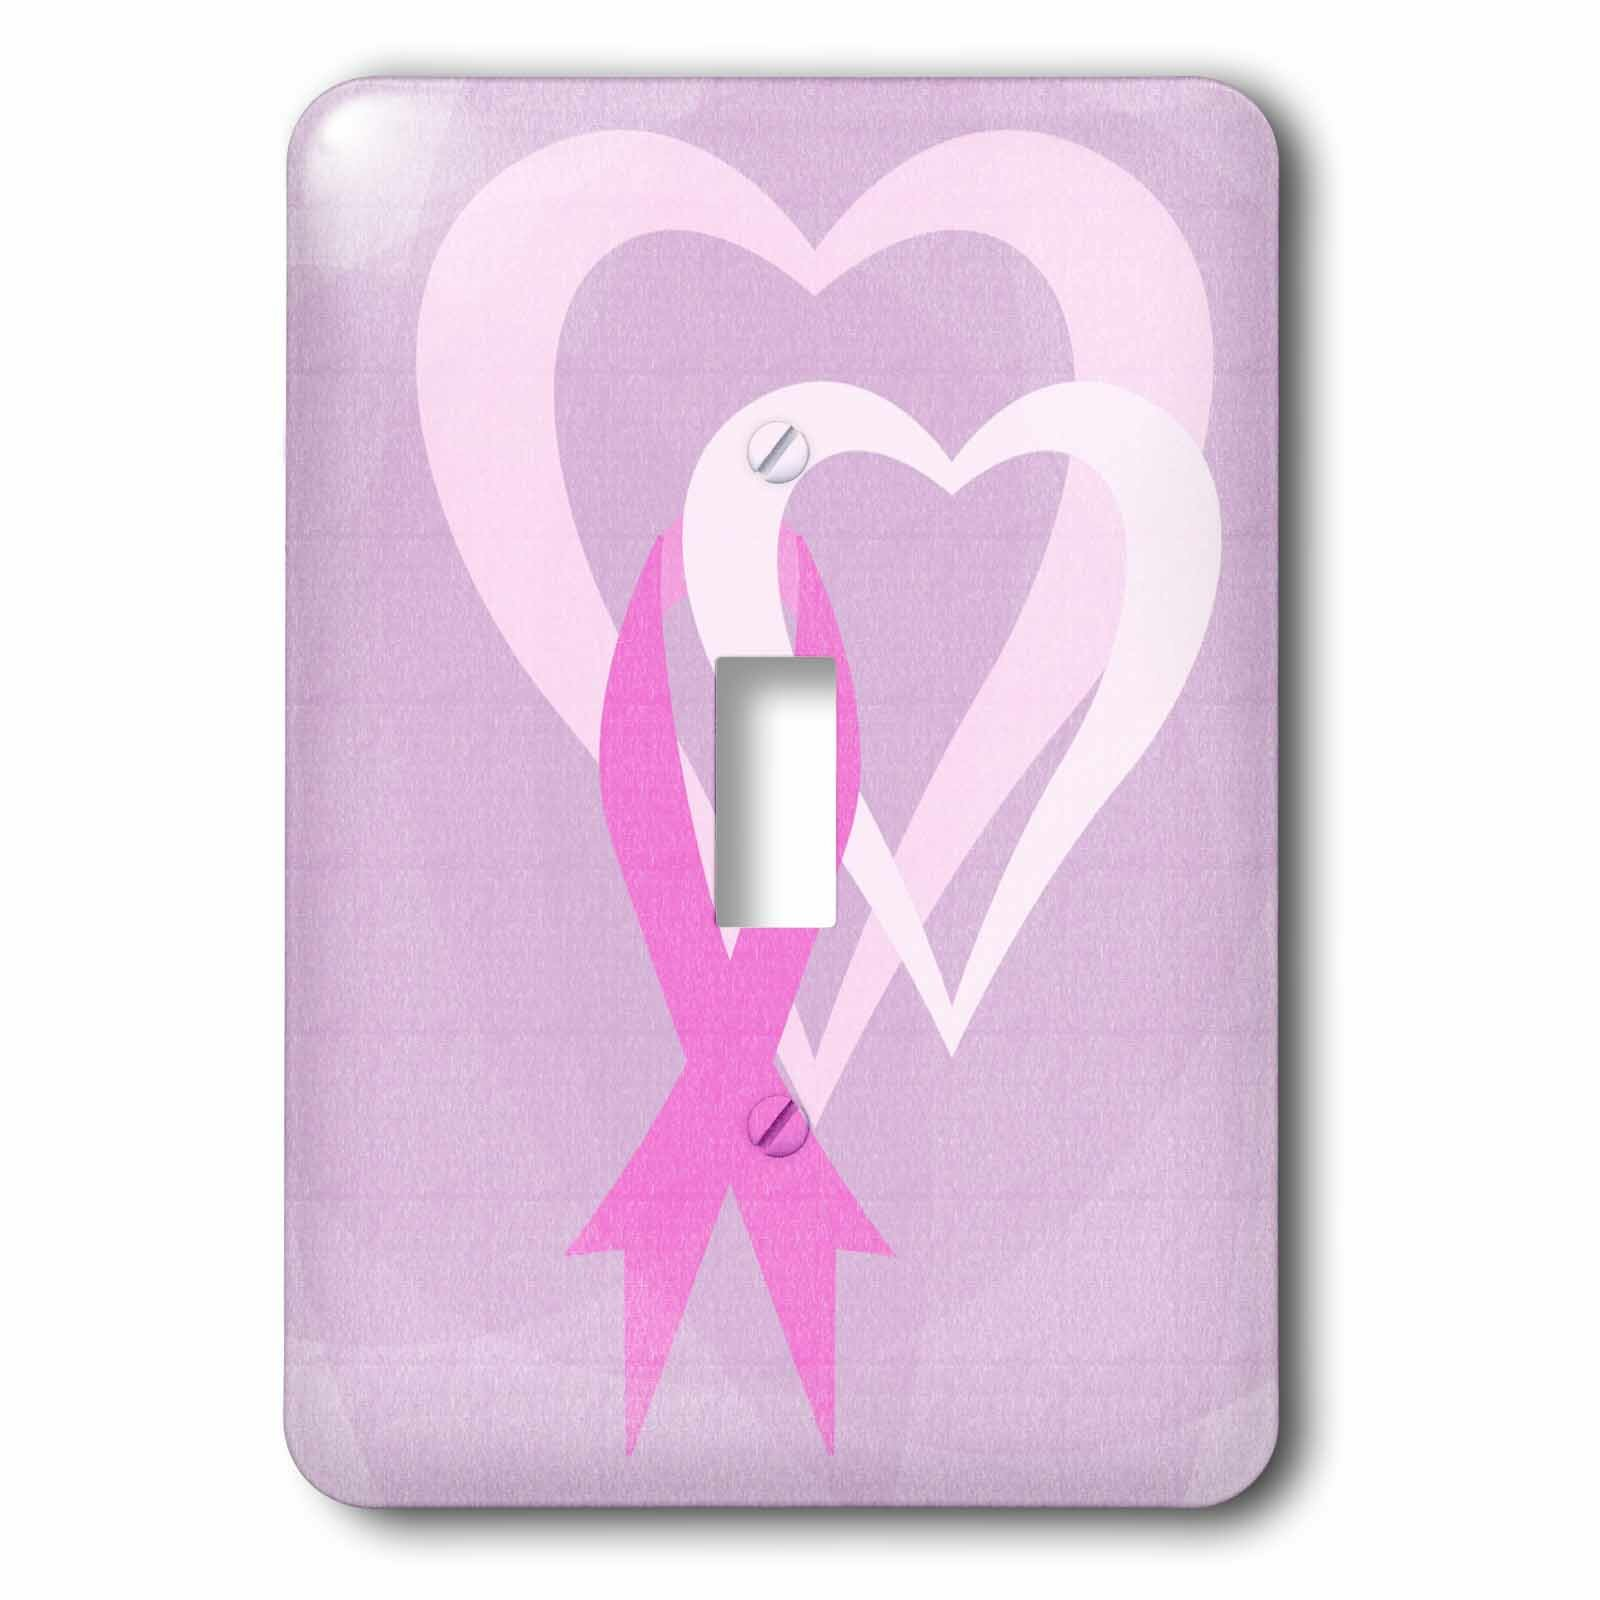 3drose Ribbon Hearts Breast Cancer Awareness 1 Gang Toggle Light Switch Wall Plate Wayfair